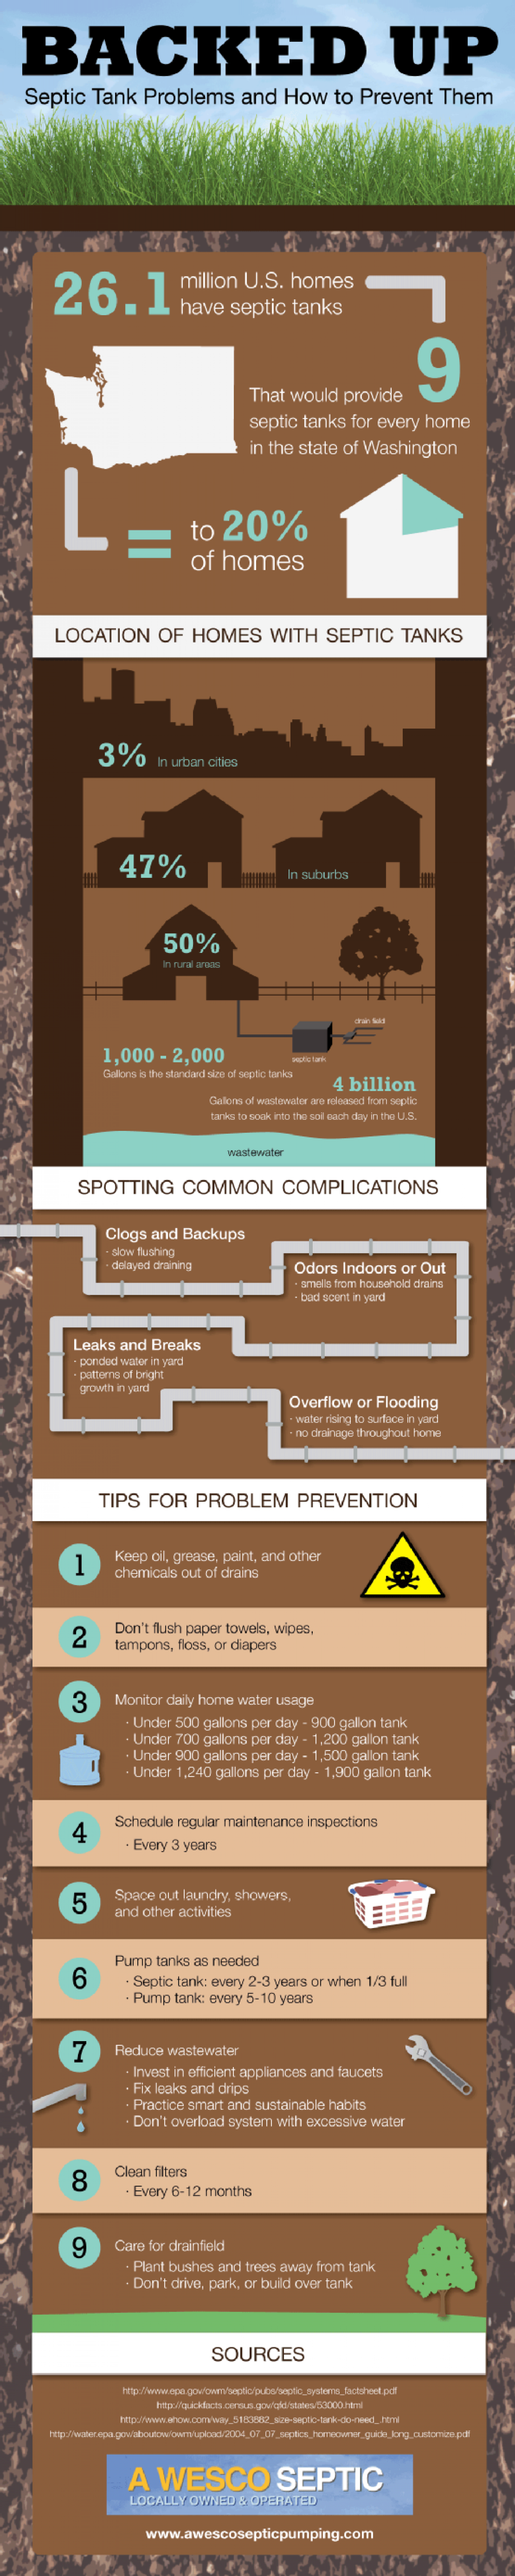 Backed Up: Septic Tank Problems and How to Prevent Them Infographic